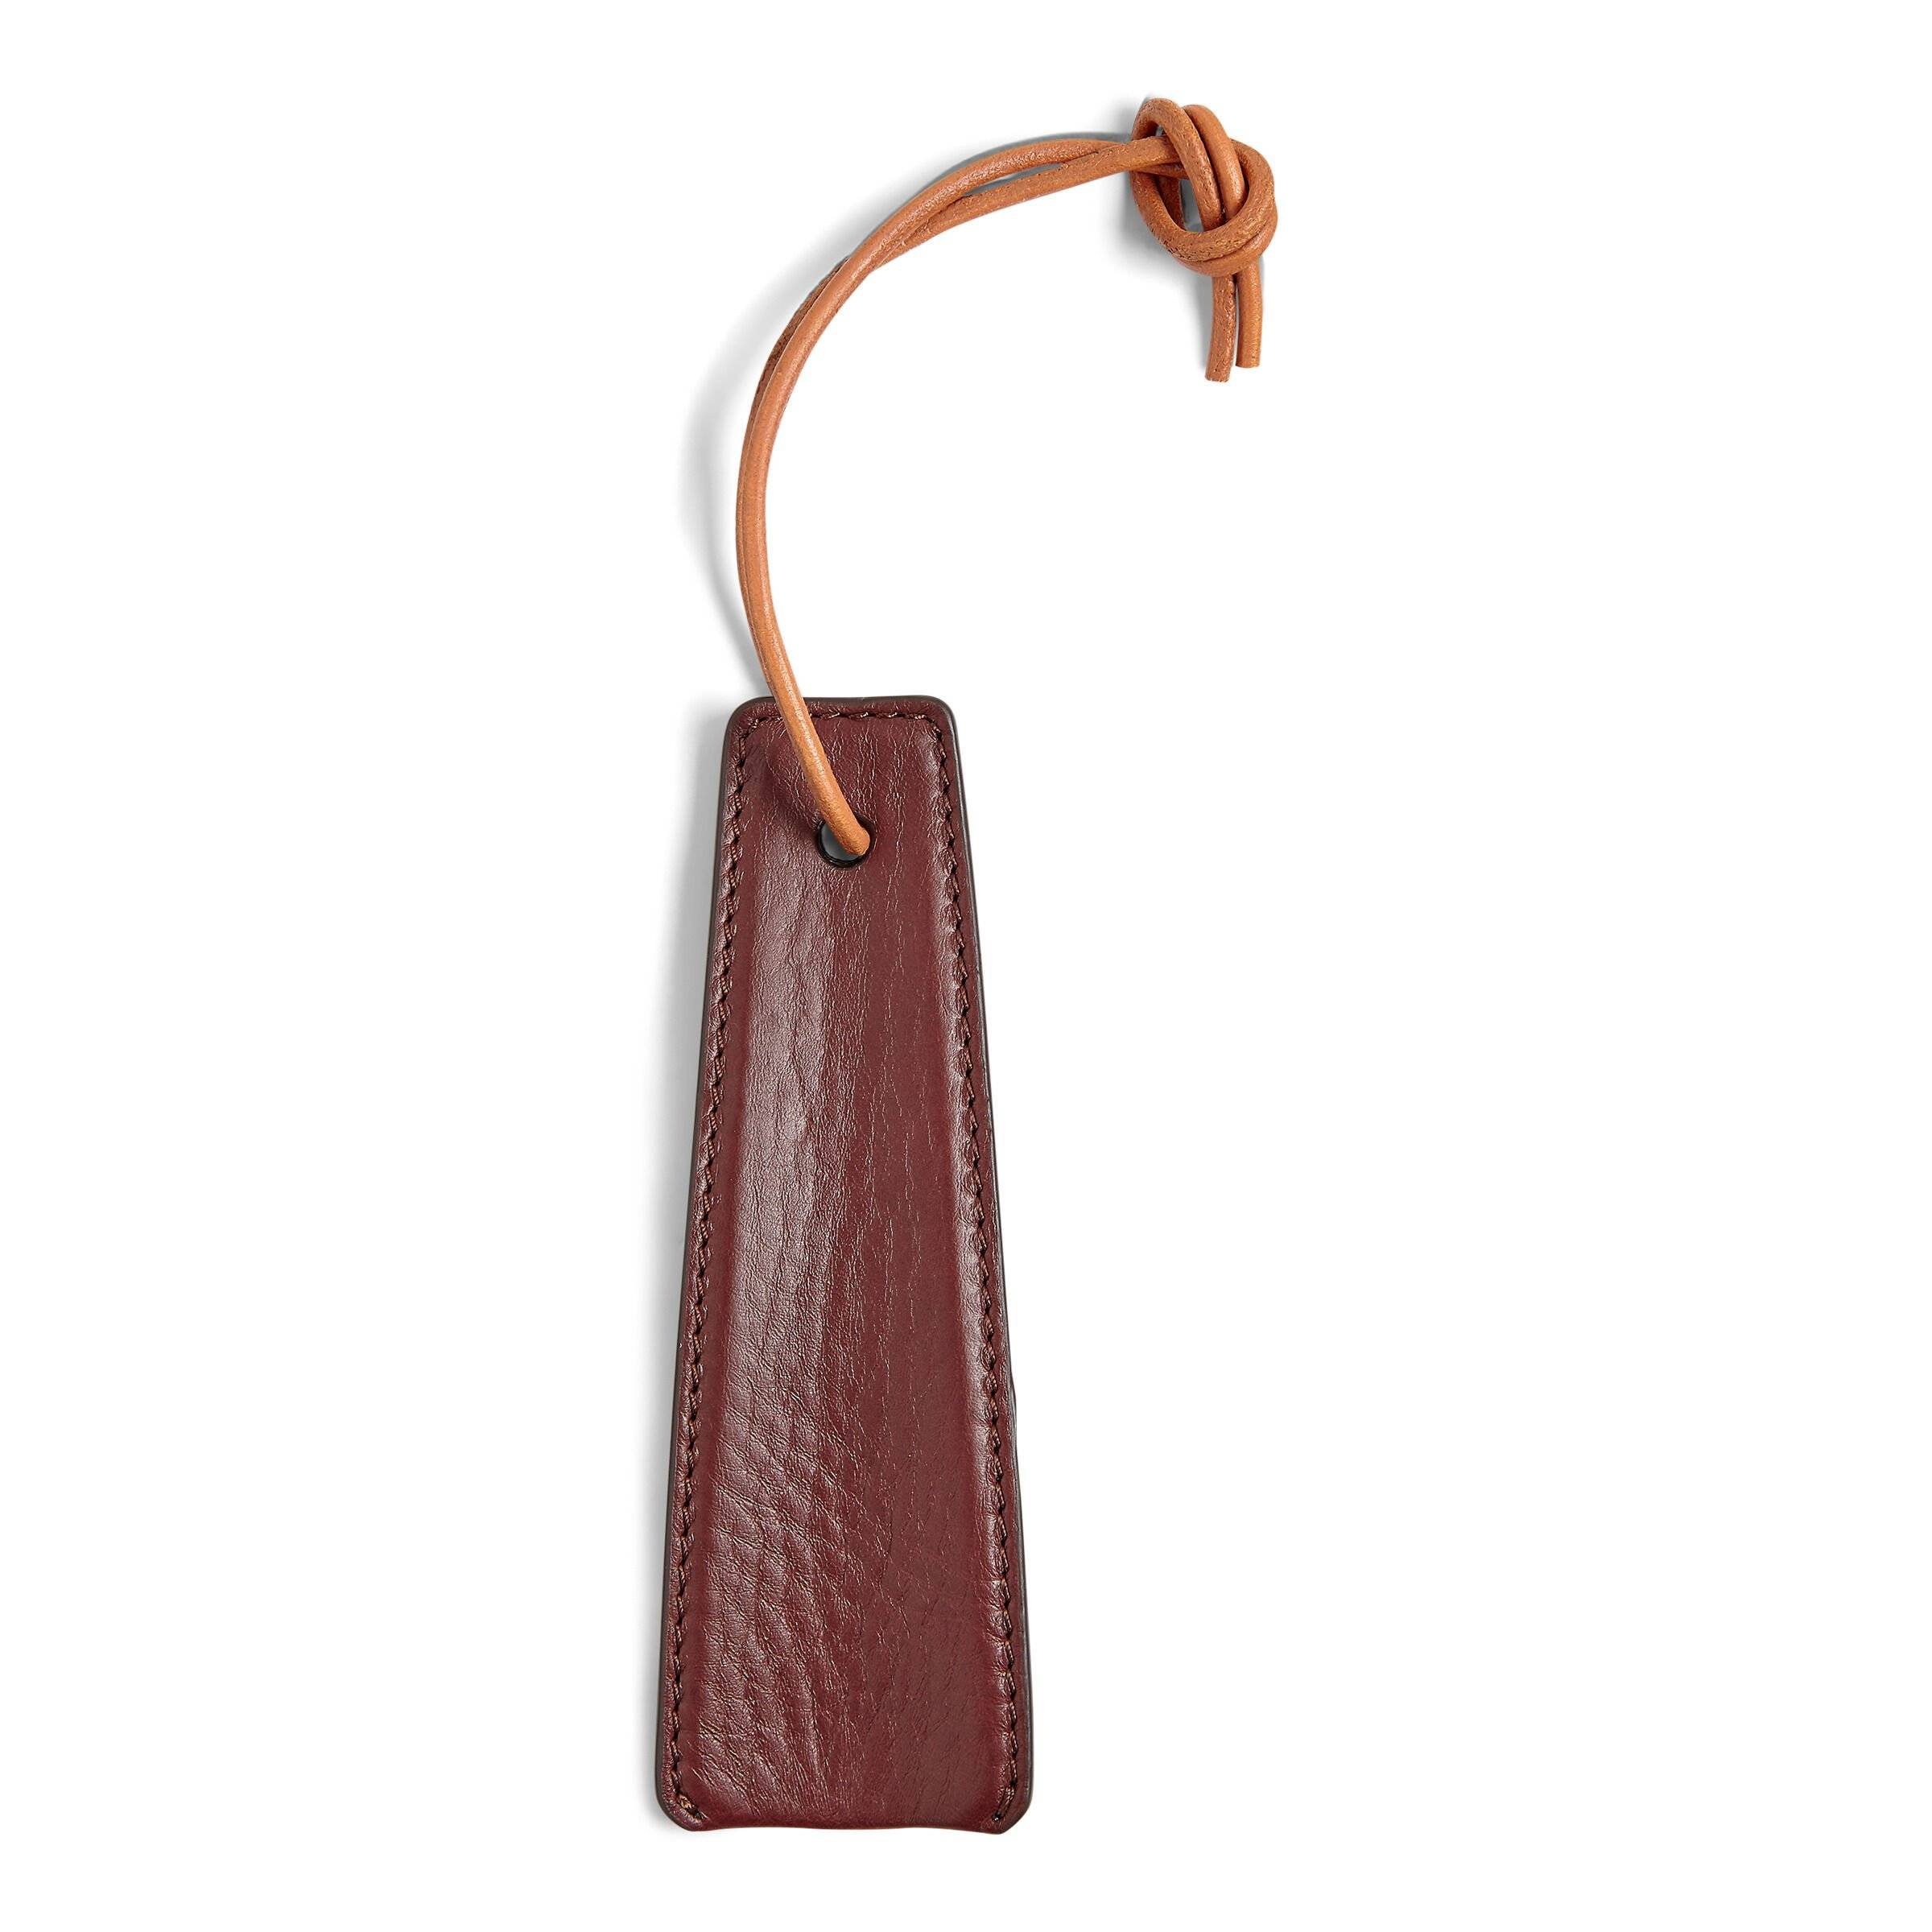 ECCO Leather Shoe Horn: One Size - Chocolate